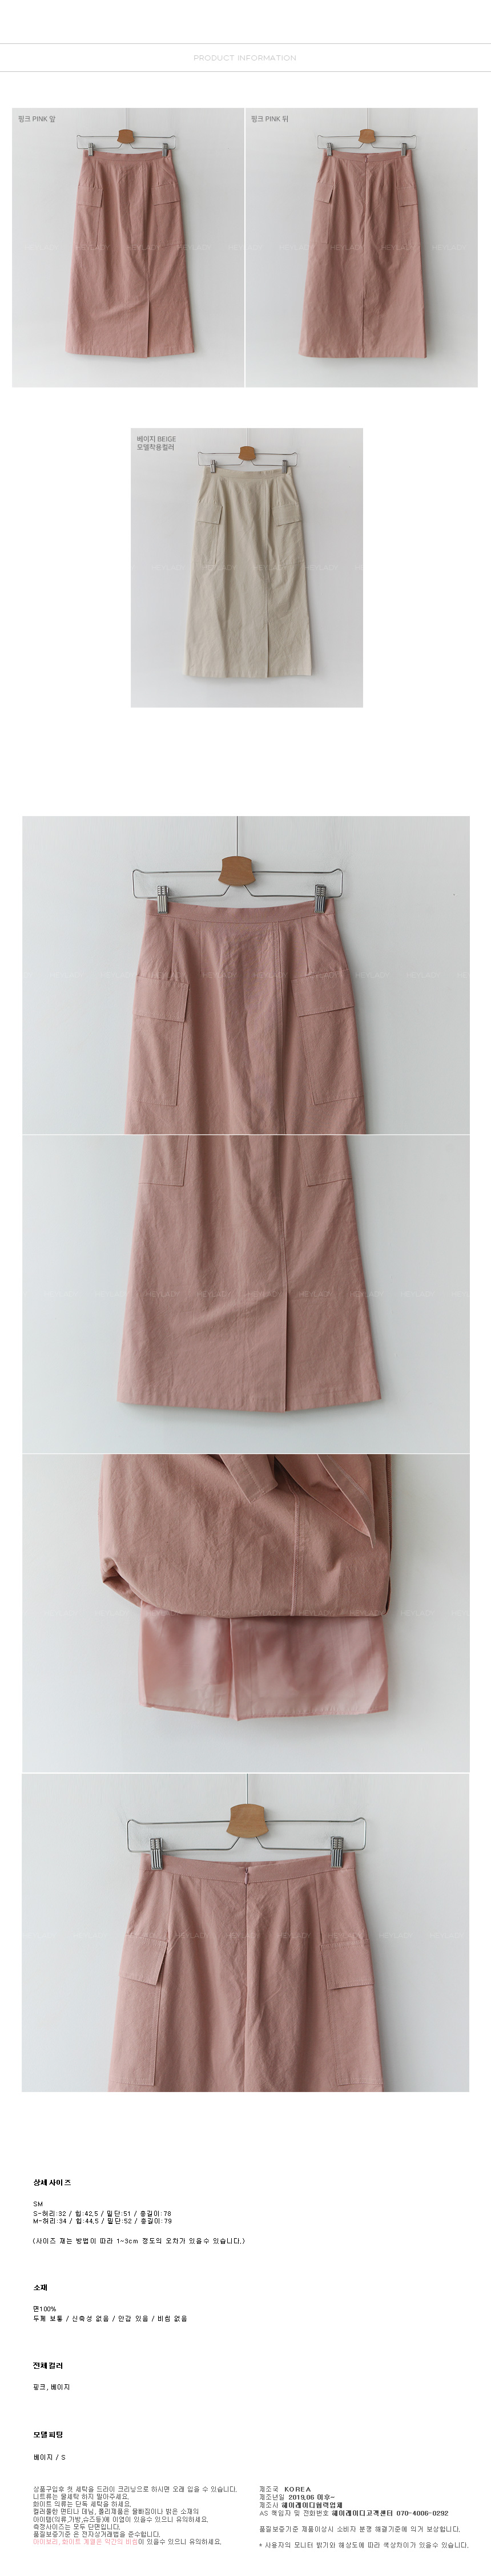 Rounded pocket skirt